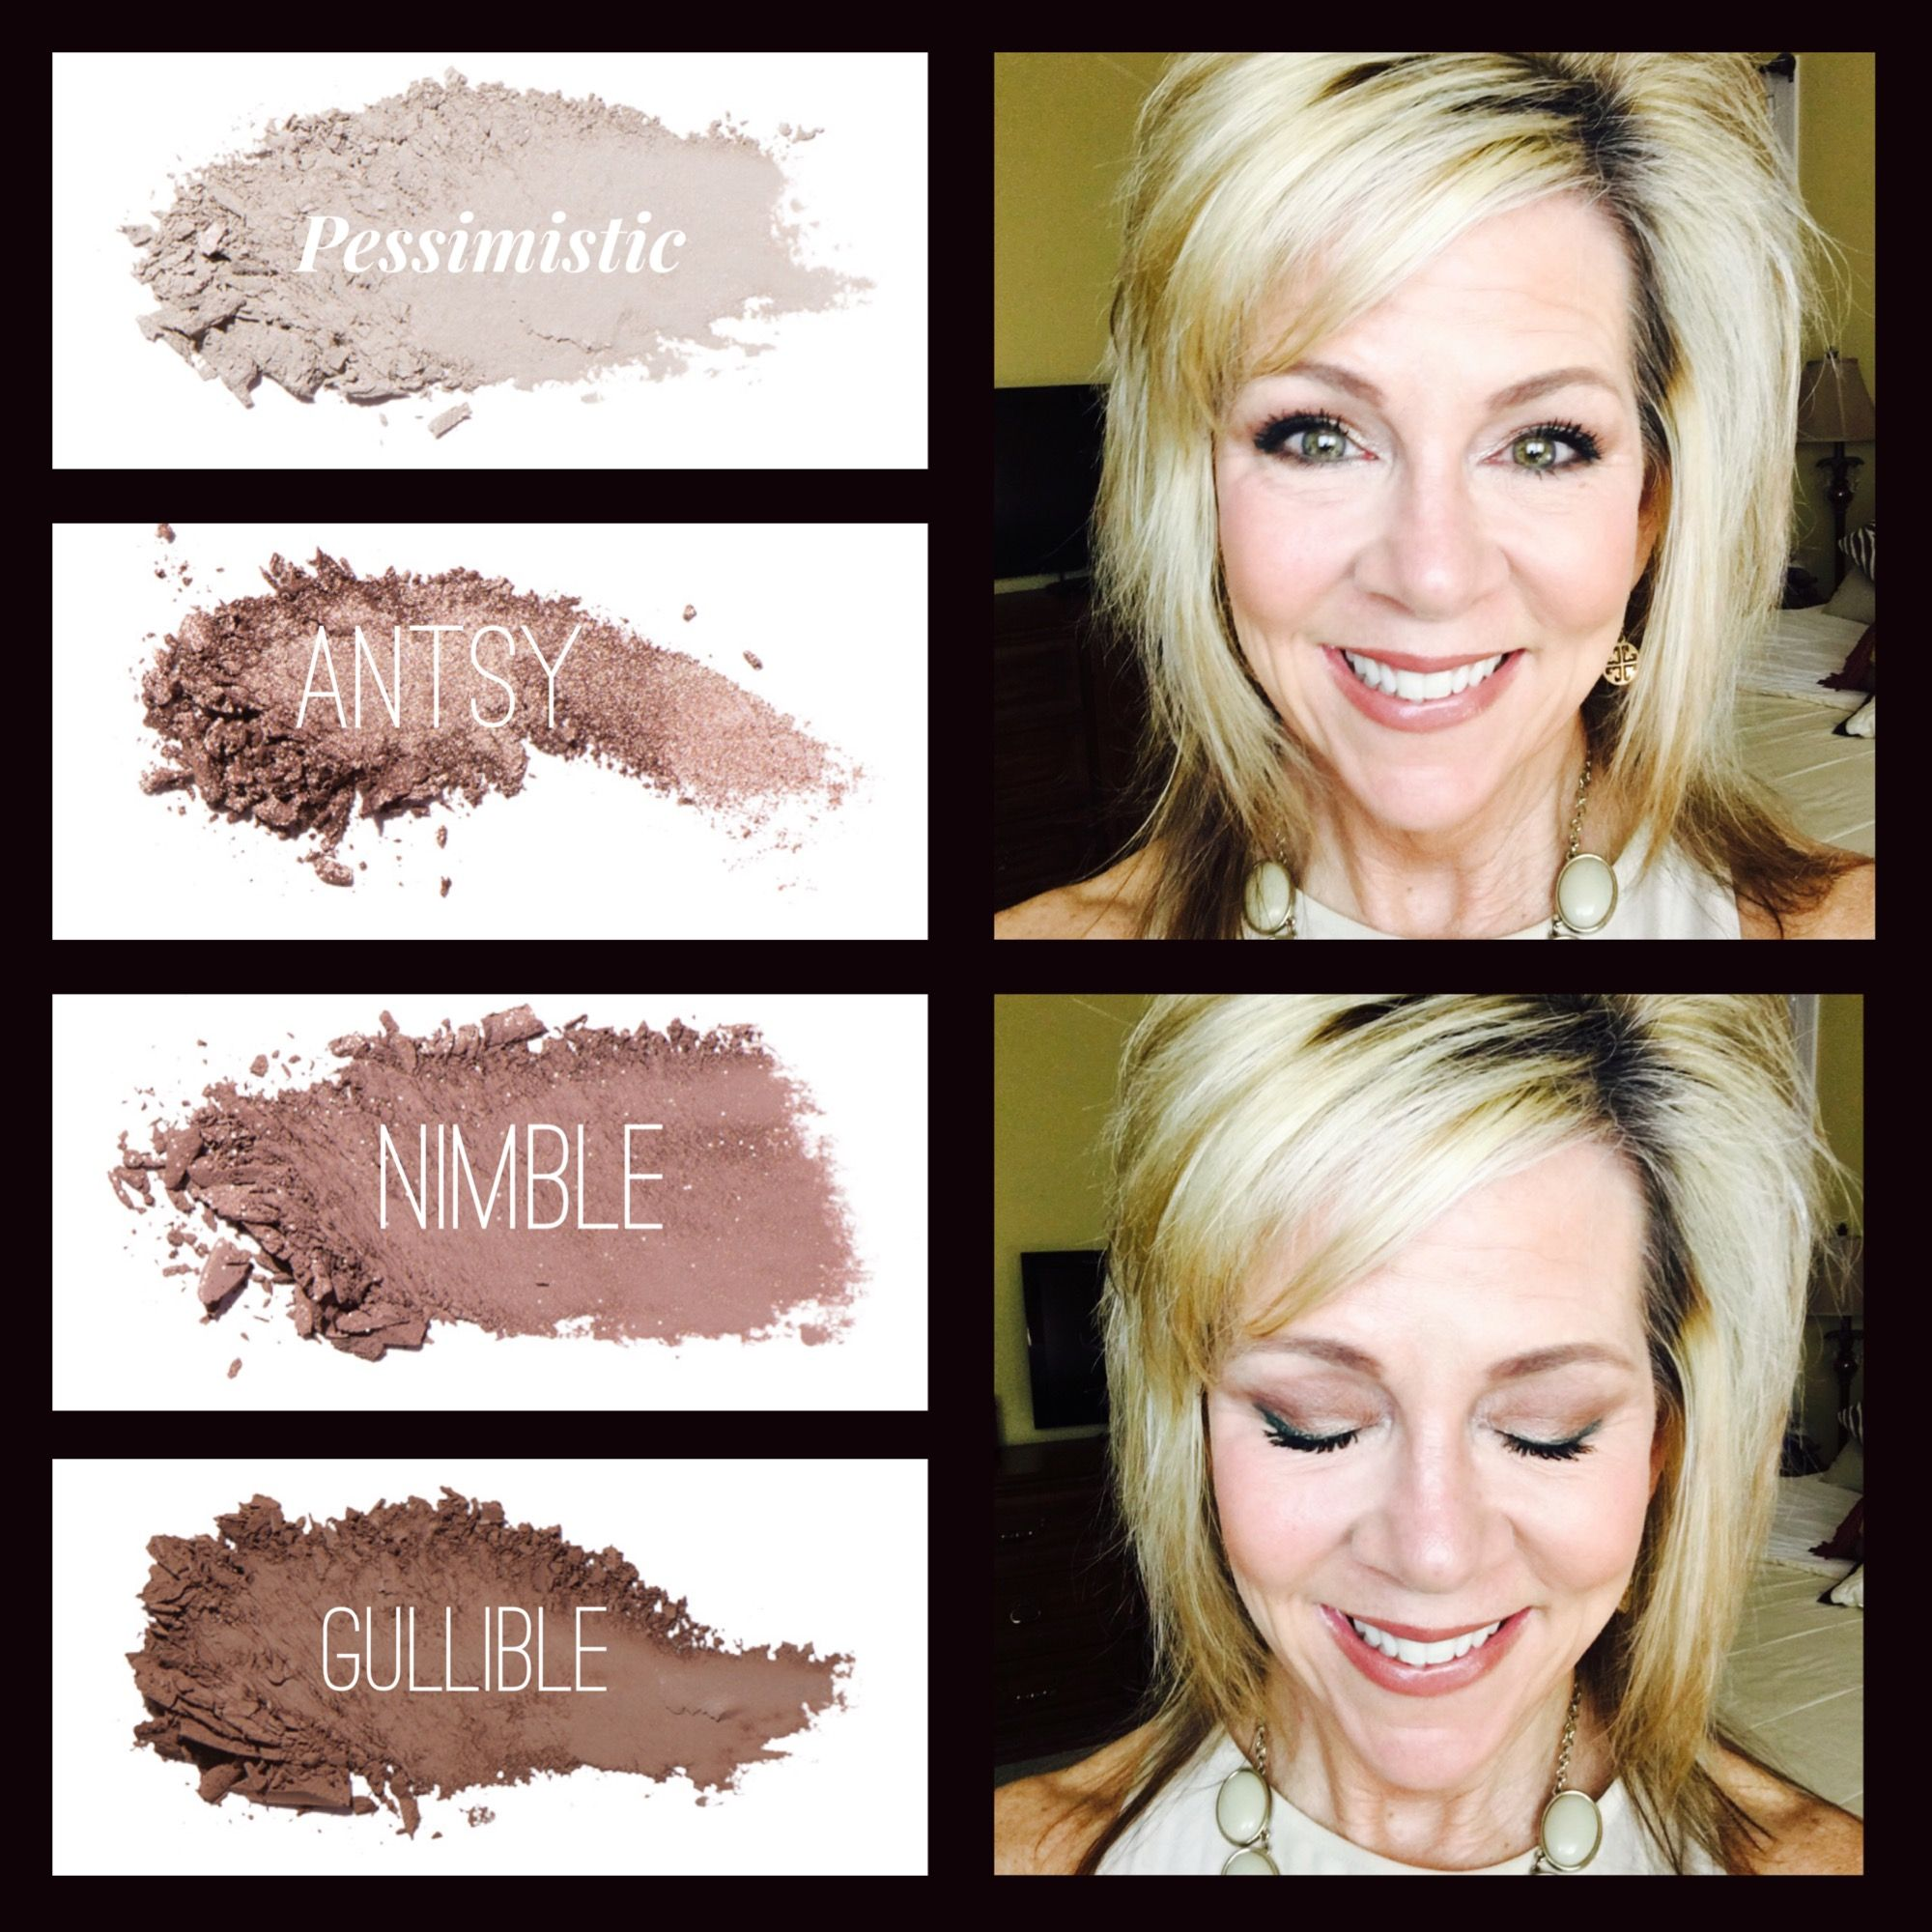 Younique Pressed Eye Shadows are infused with primer. Long lasting beautiful color! #youniquepressedshadows